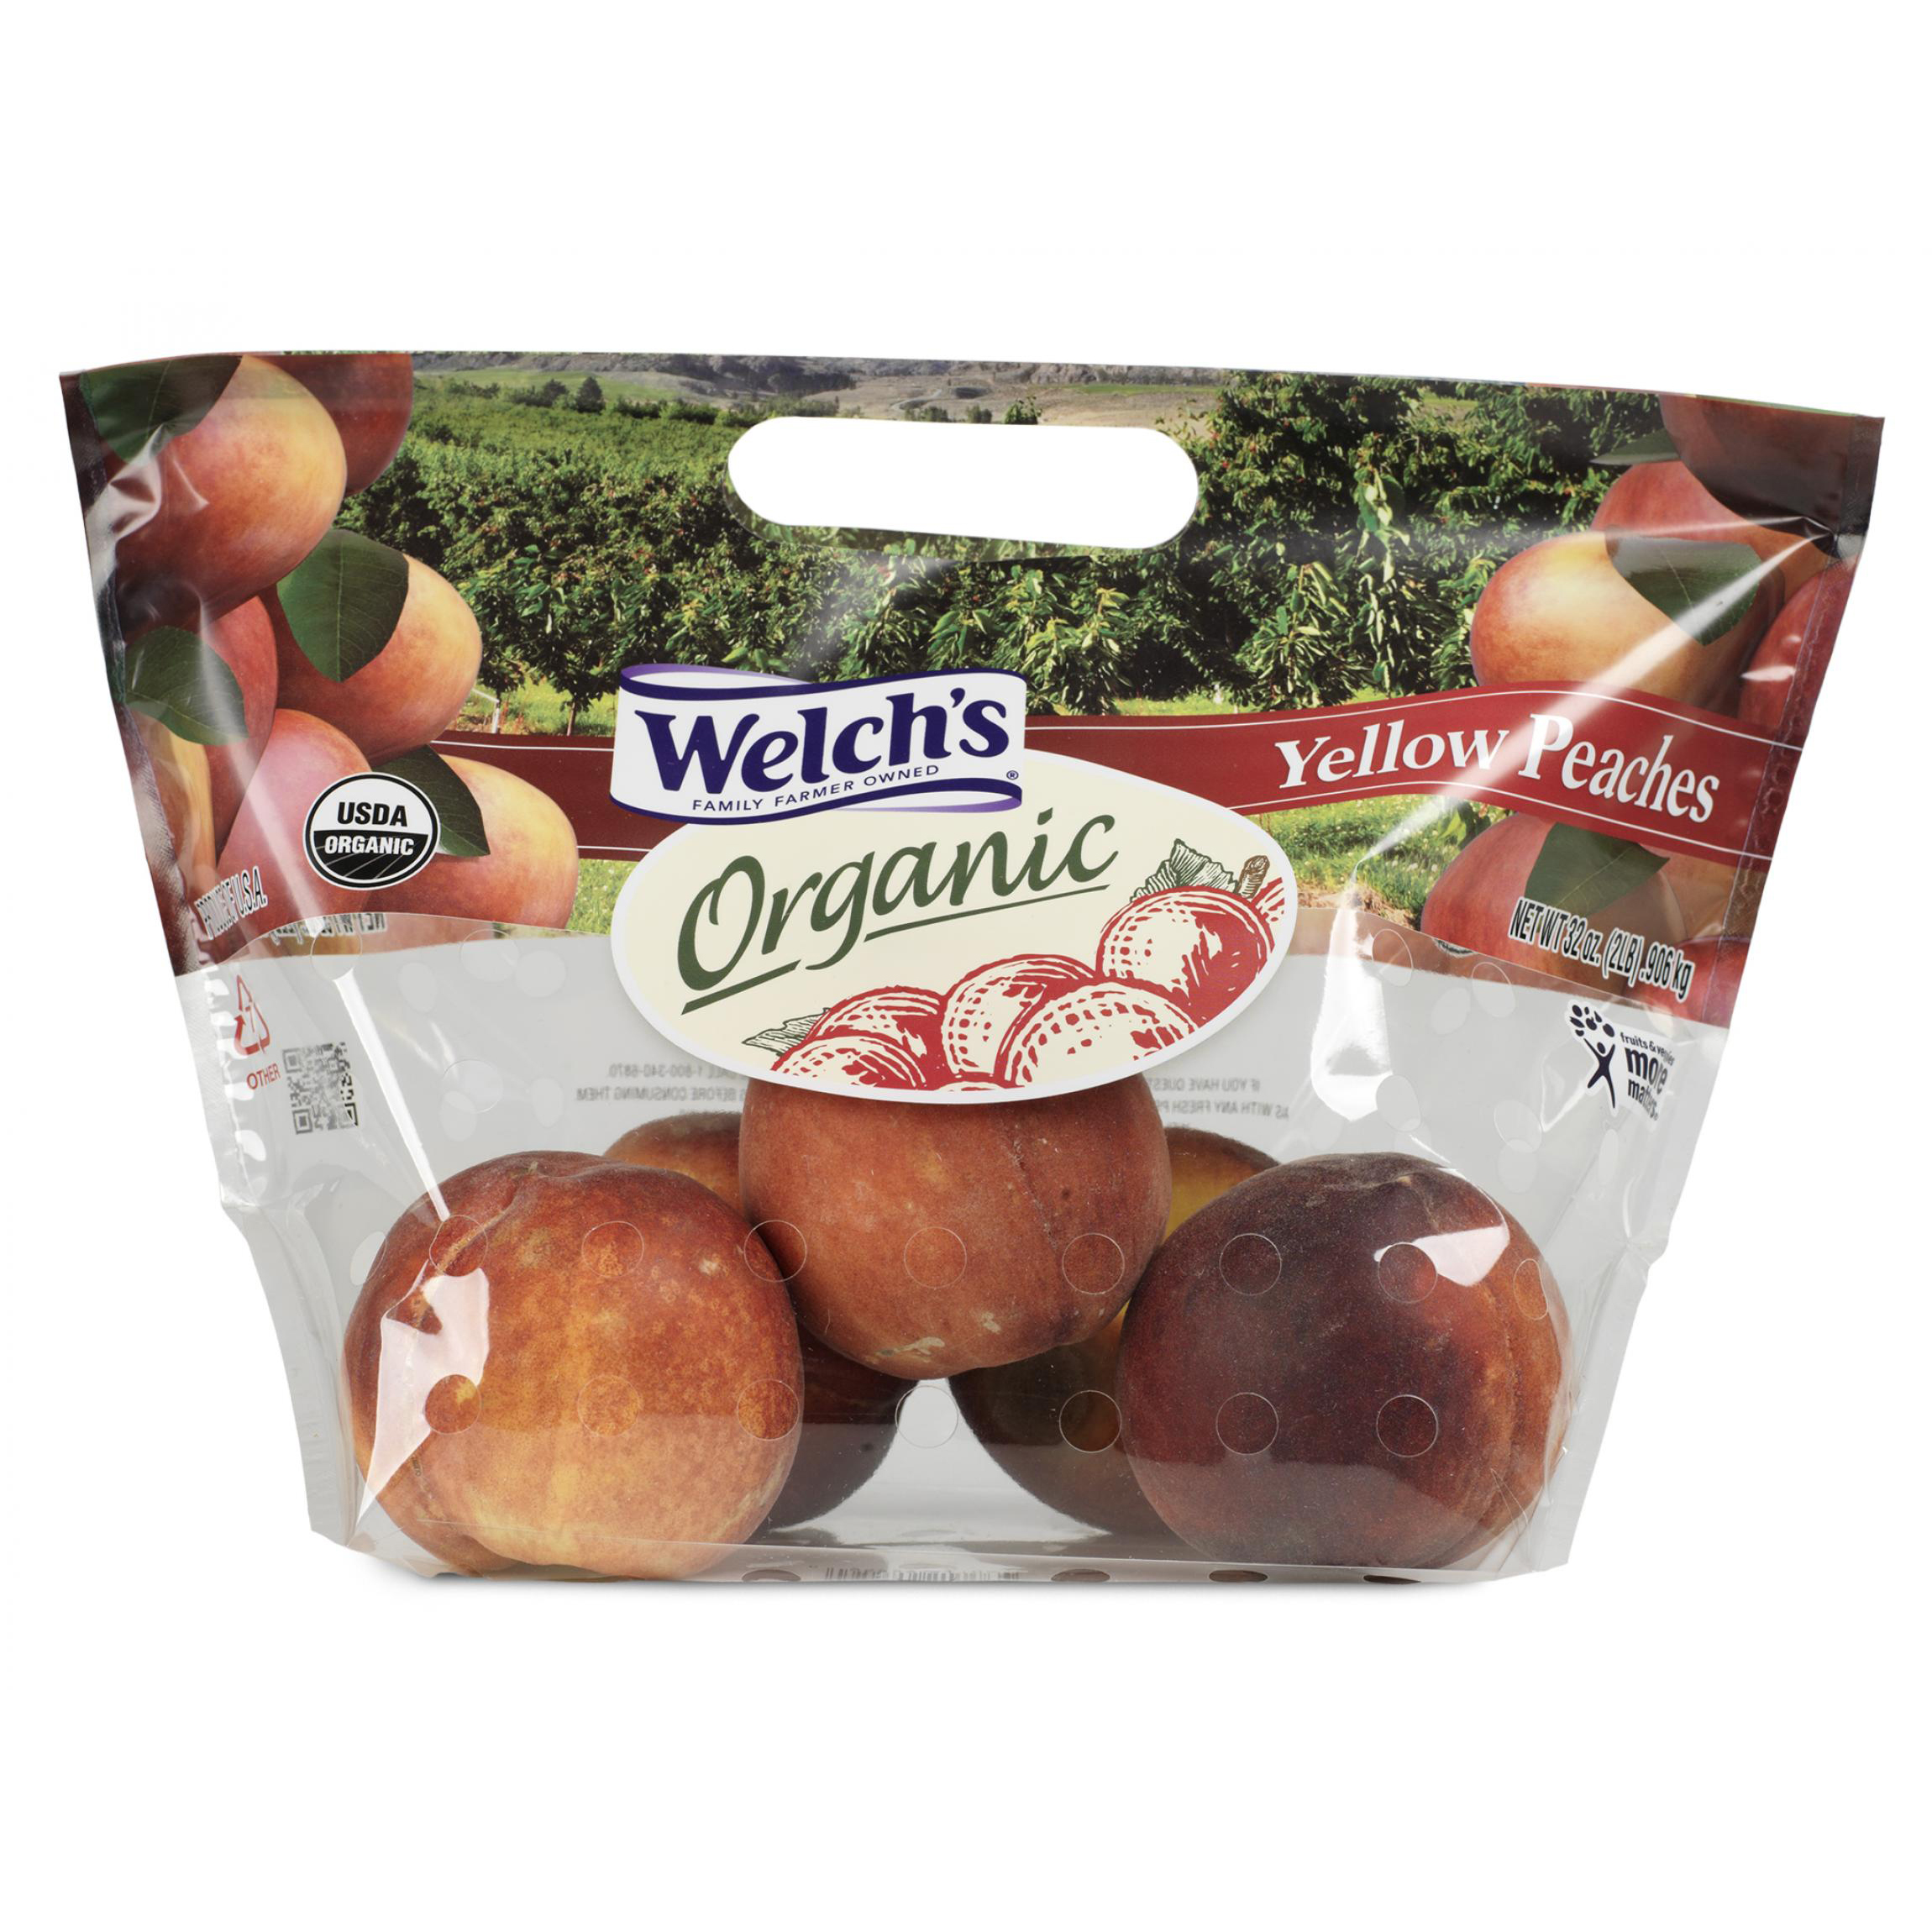 One example of packaging that Partners and Hunt produces for the Welch's brand.